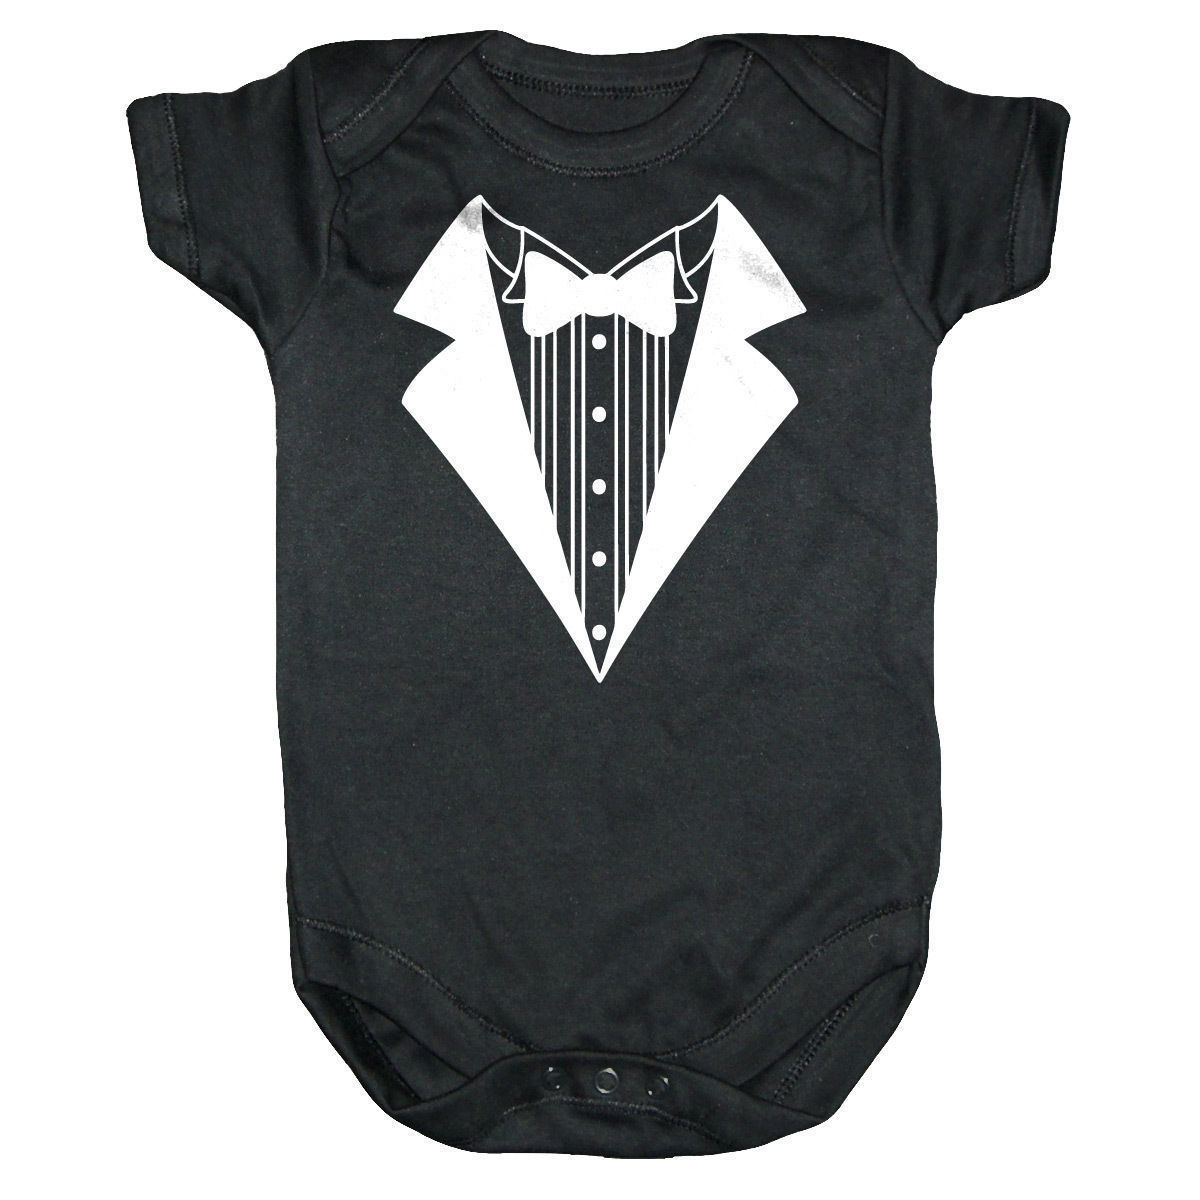 Shop for baby tuxedo online at Target. Free shipping on purchases over $35 and save 5% every day with your Target REDcard.